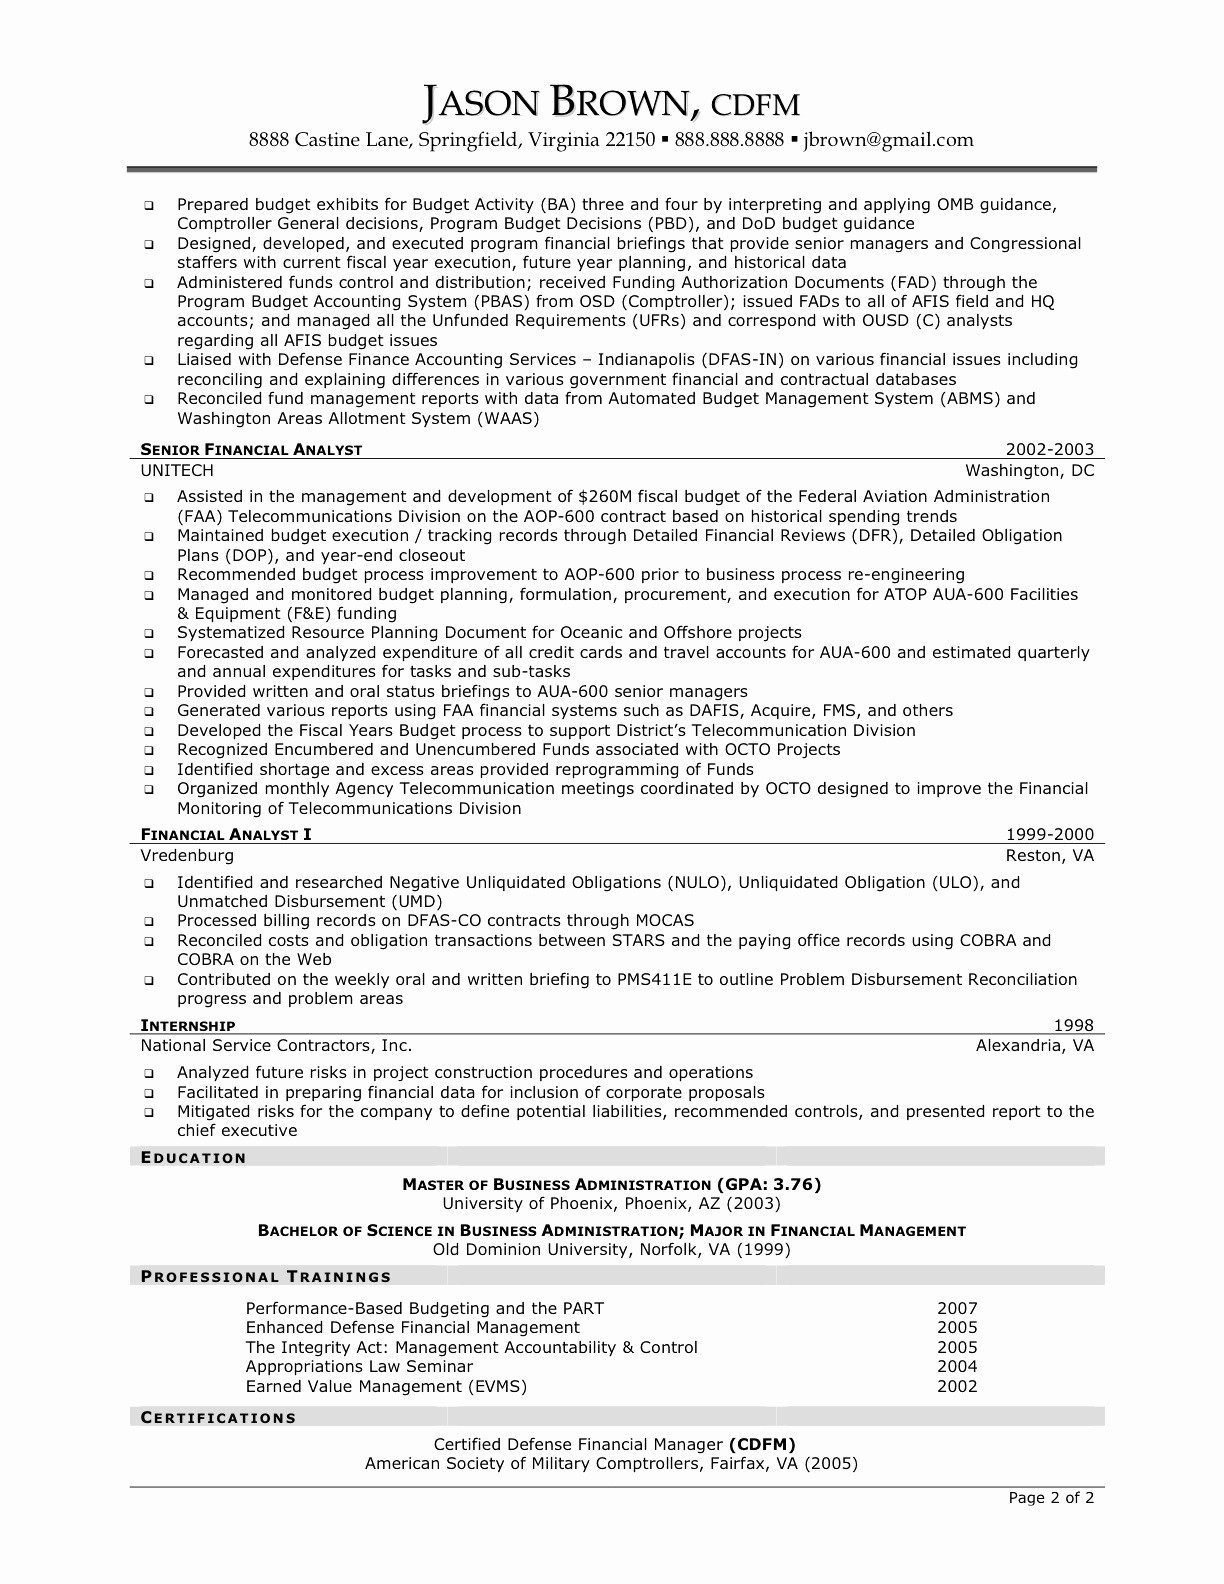 Customer Service Resume Template - Sample Resume Retail Customer Service Free Downloads Customer